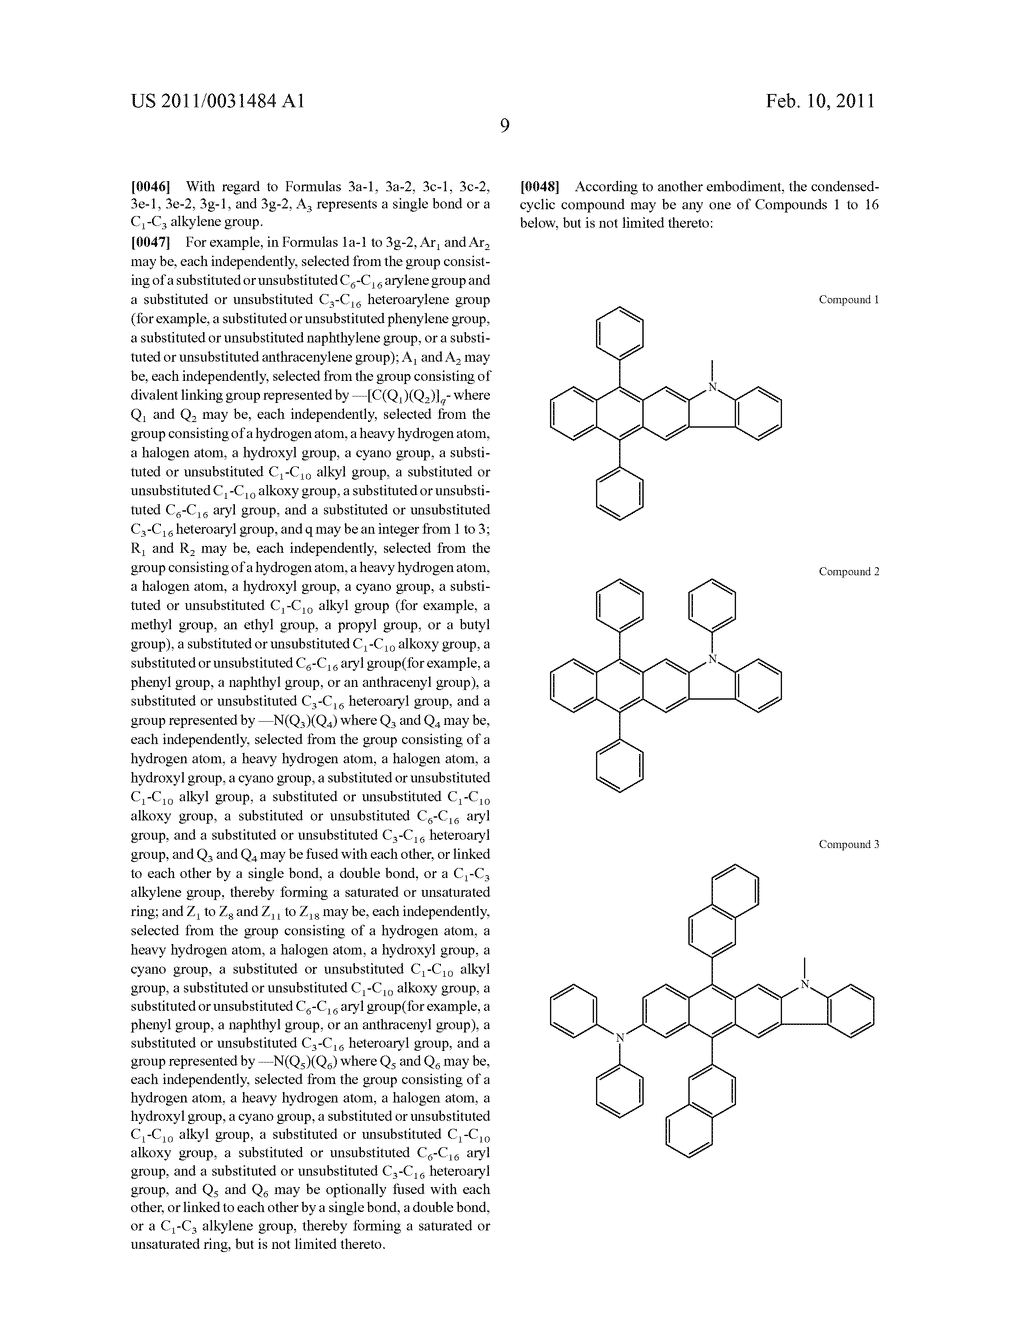 CONDENSED-CYCLIC COMPOUND AND ORGANIC LIGHT EMITTING DIODE HAVING ORGANIC LAYER INCLUDING THE SAME - diagram, schematic, and image 11